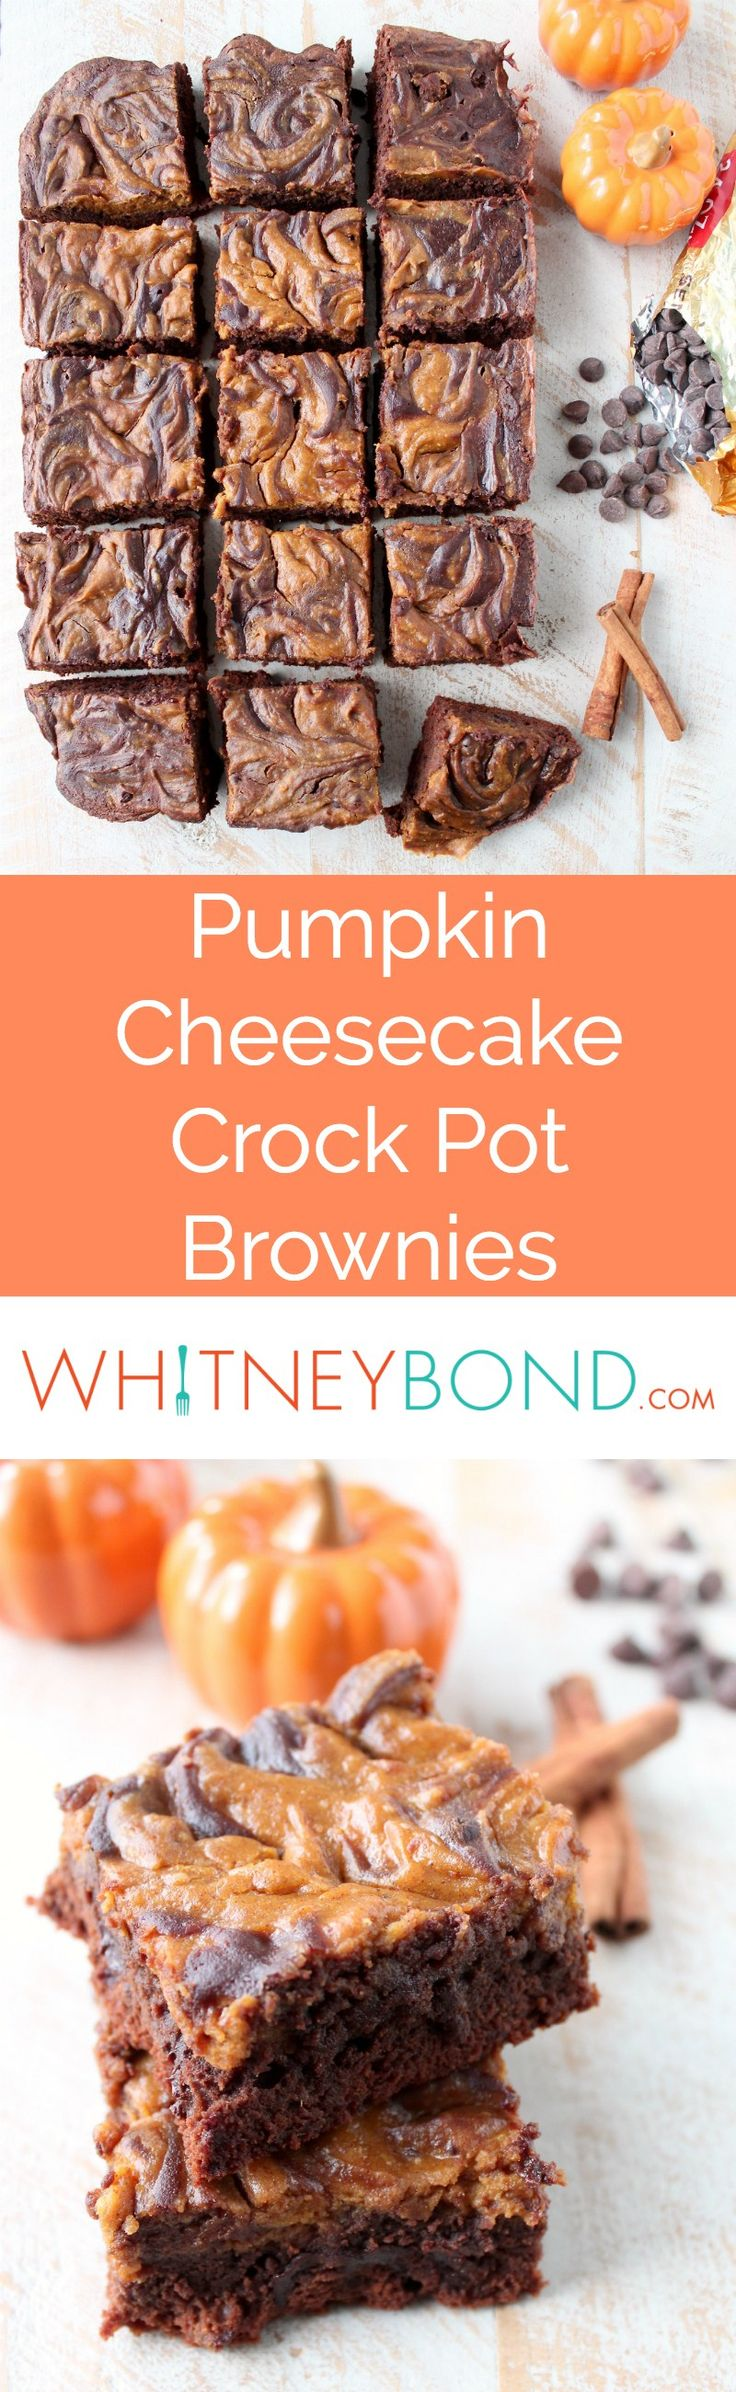 Crock Pot Brownies are an easy way to bake up a delicious dessert without the use of an oven, throw in a Pumpkin Cheesecake Swirl for a festive fall treat!